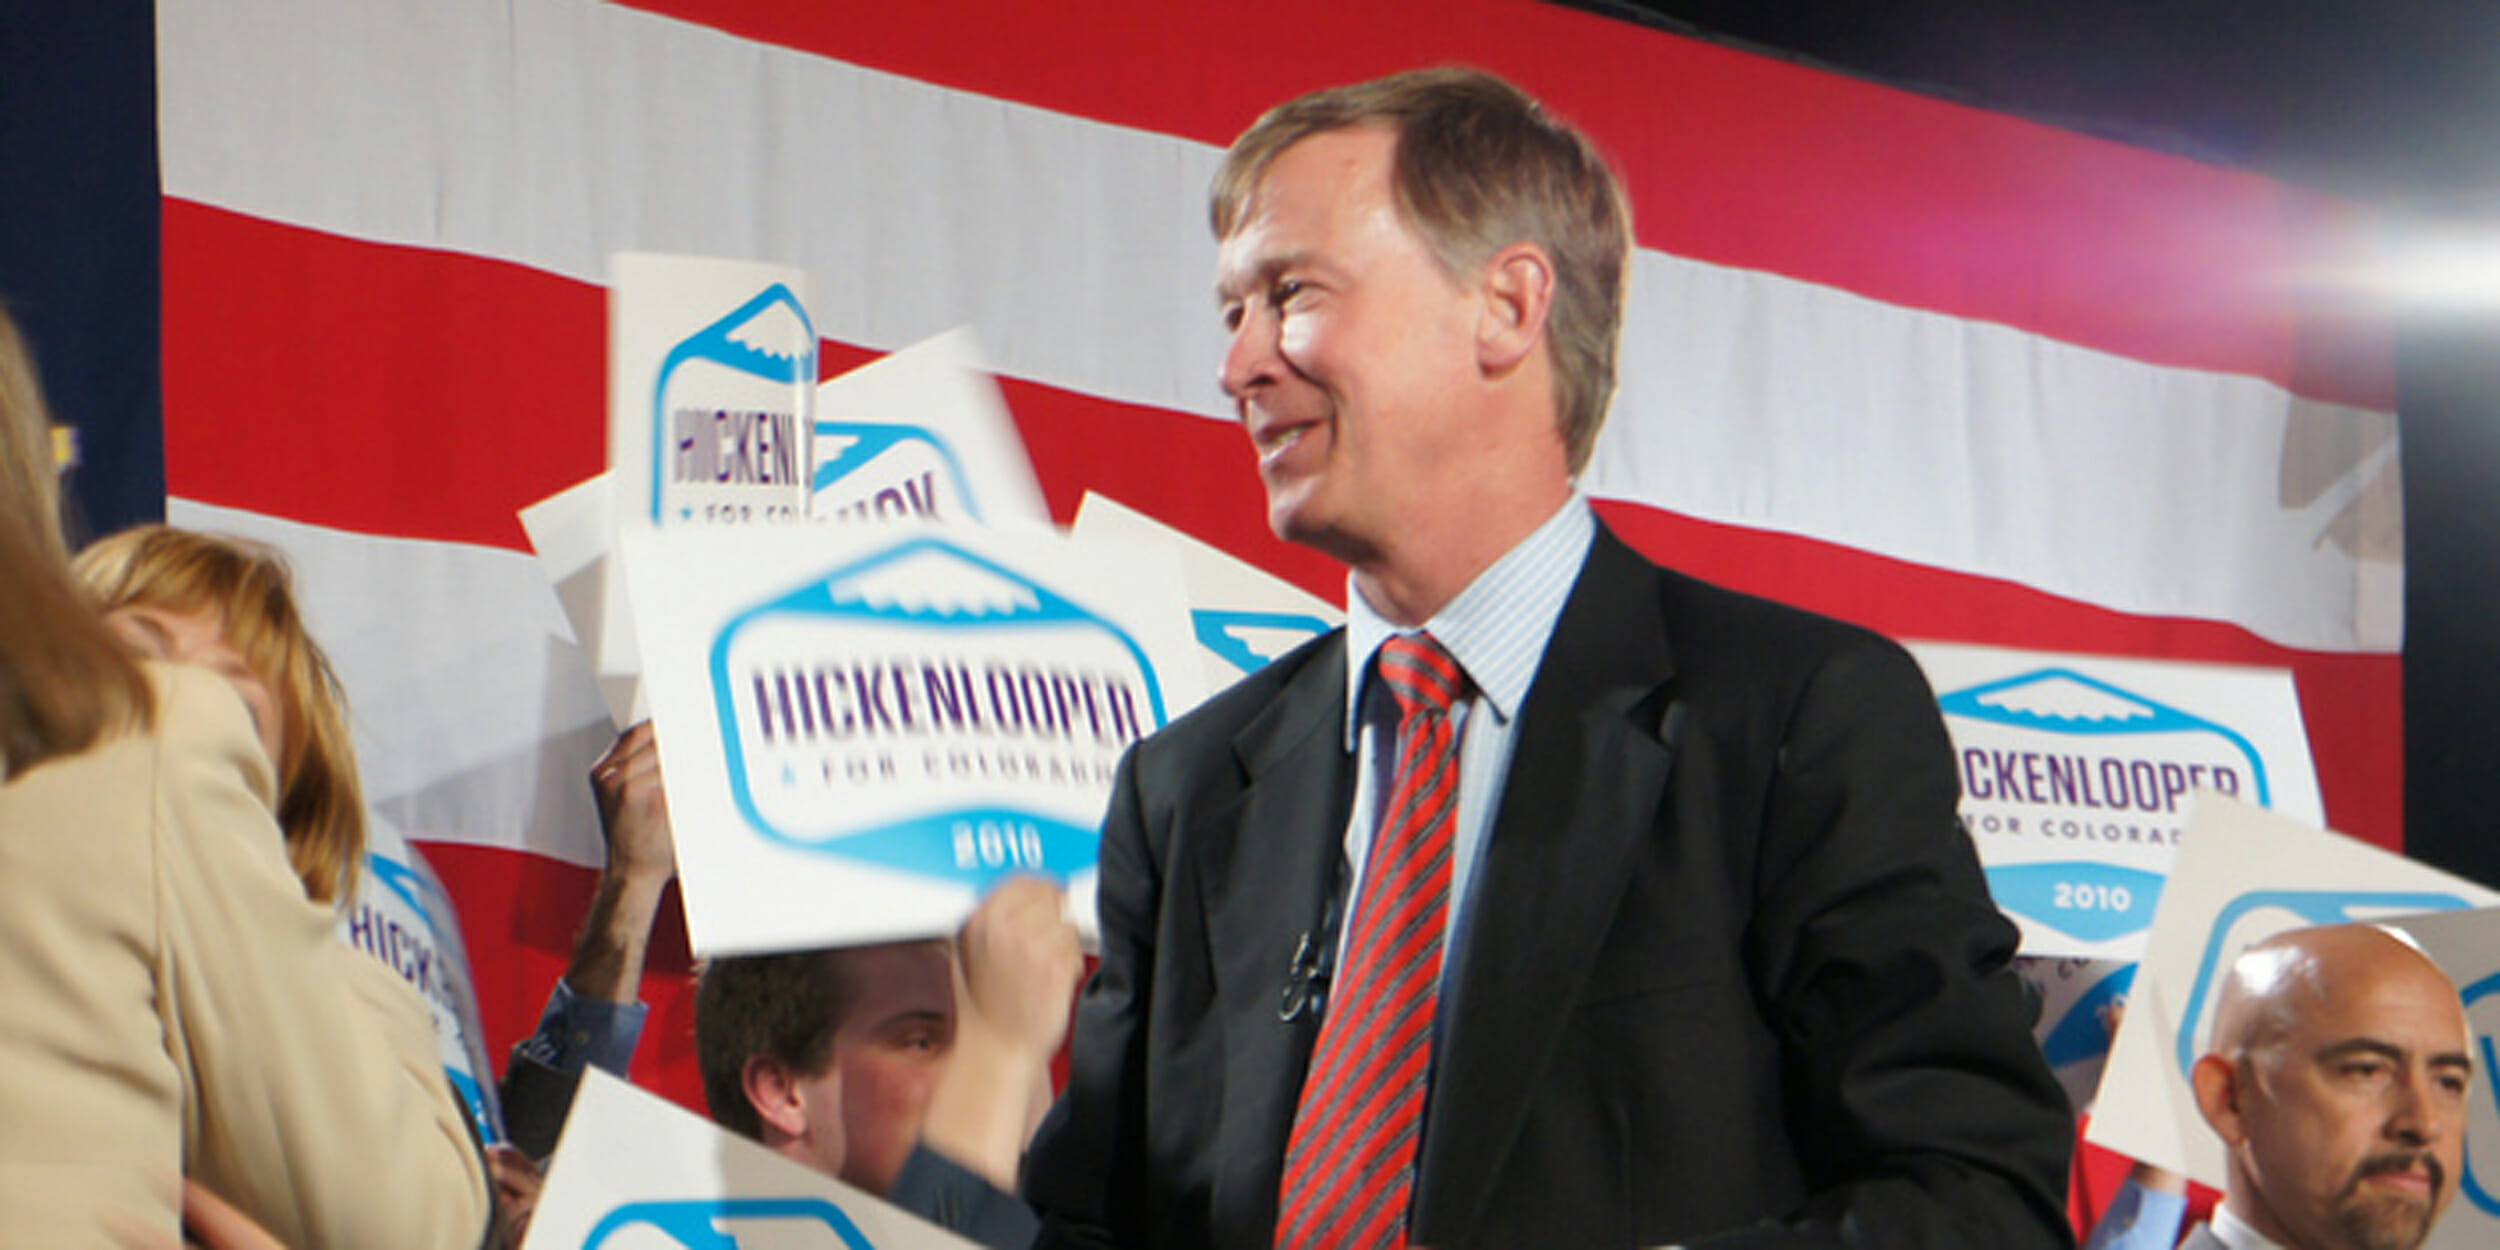 Could John Hickenlooper be a Democratic candidate to face off against Donald Trump in 2020?